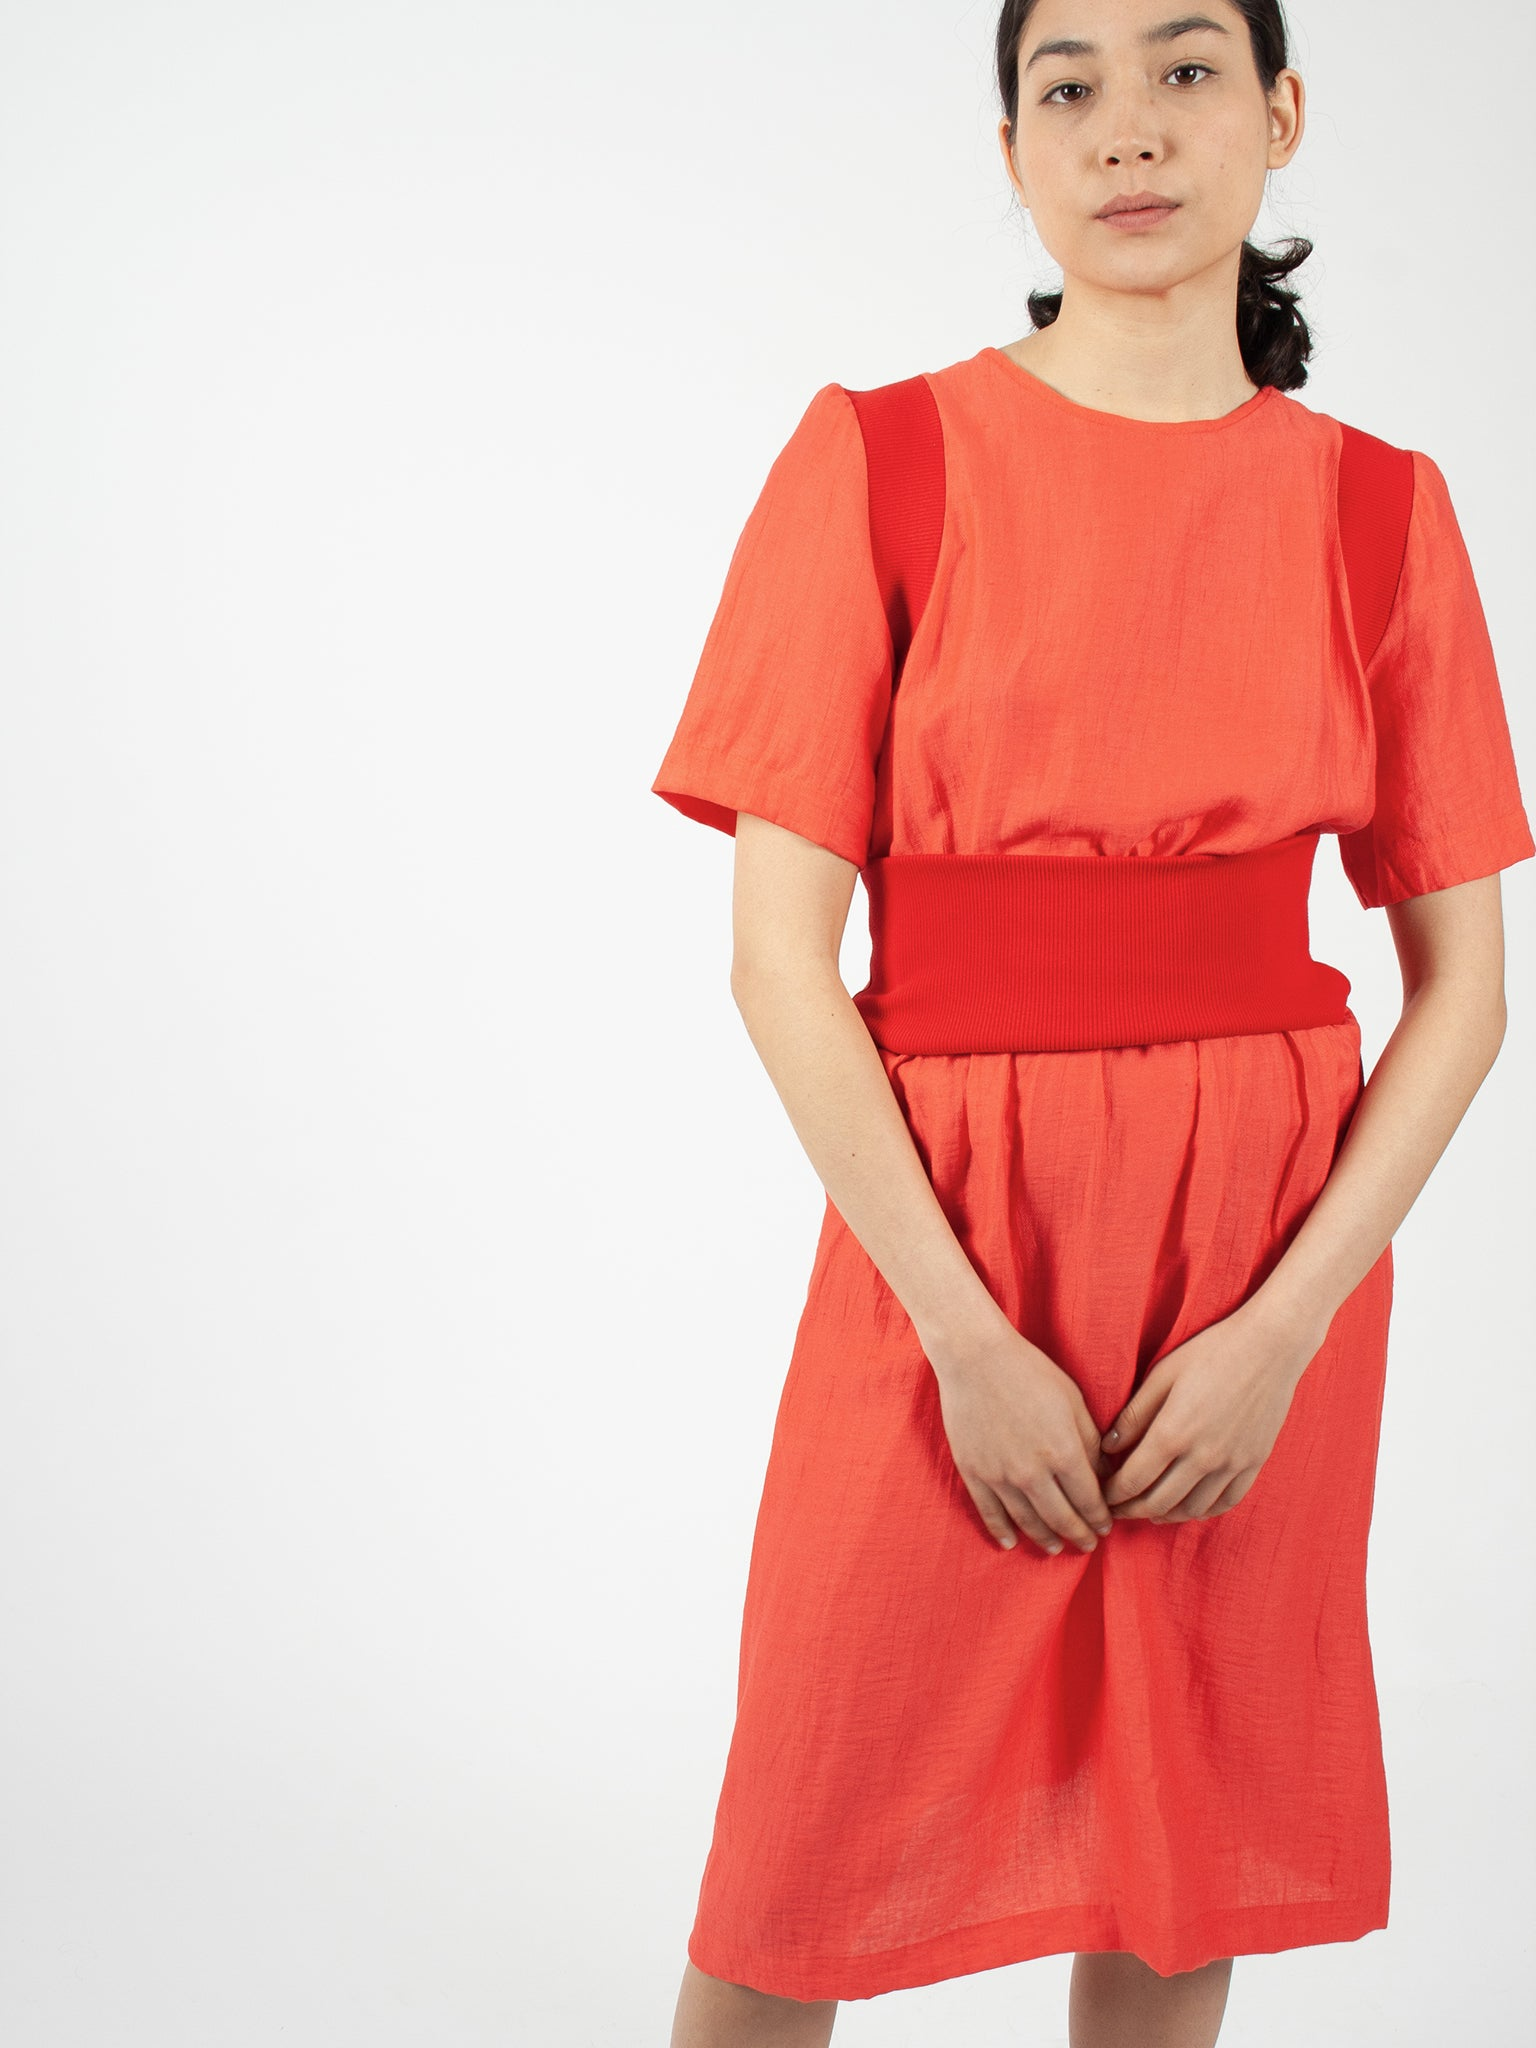 Milli dress, hibiscus